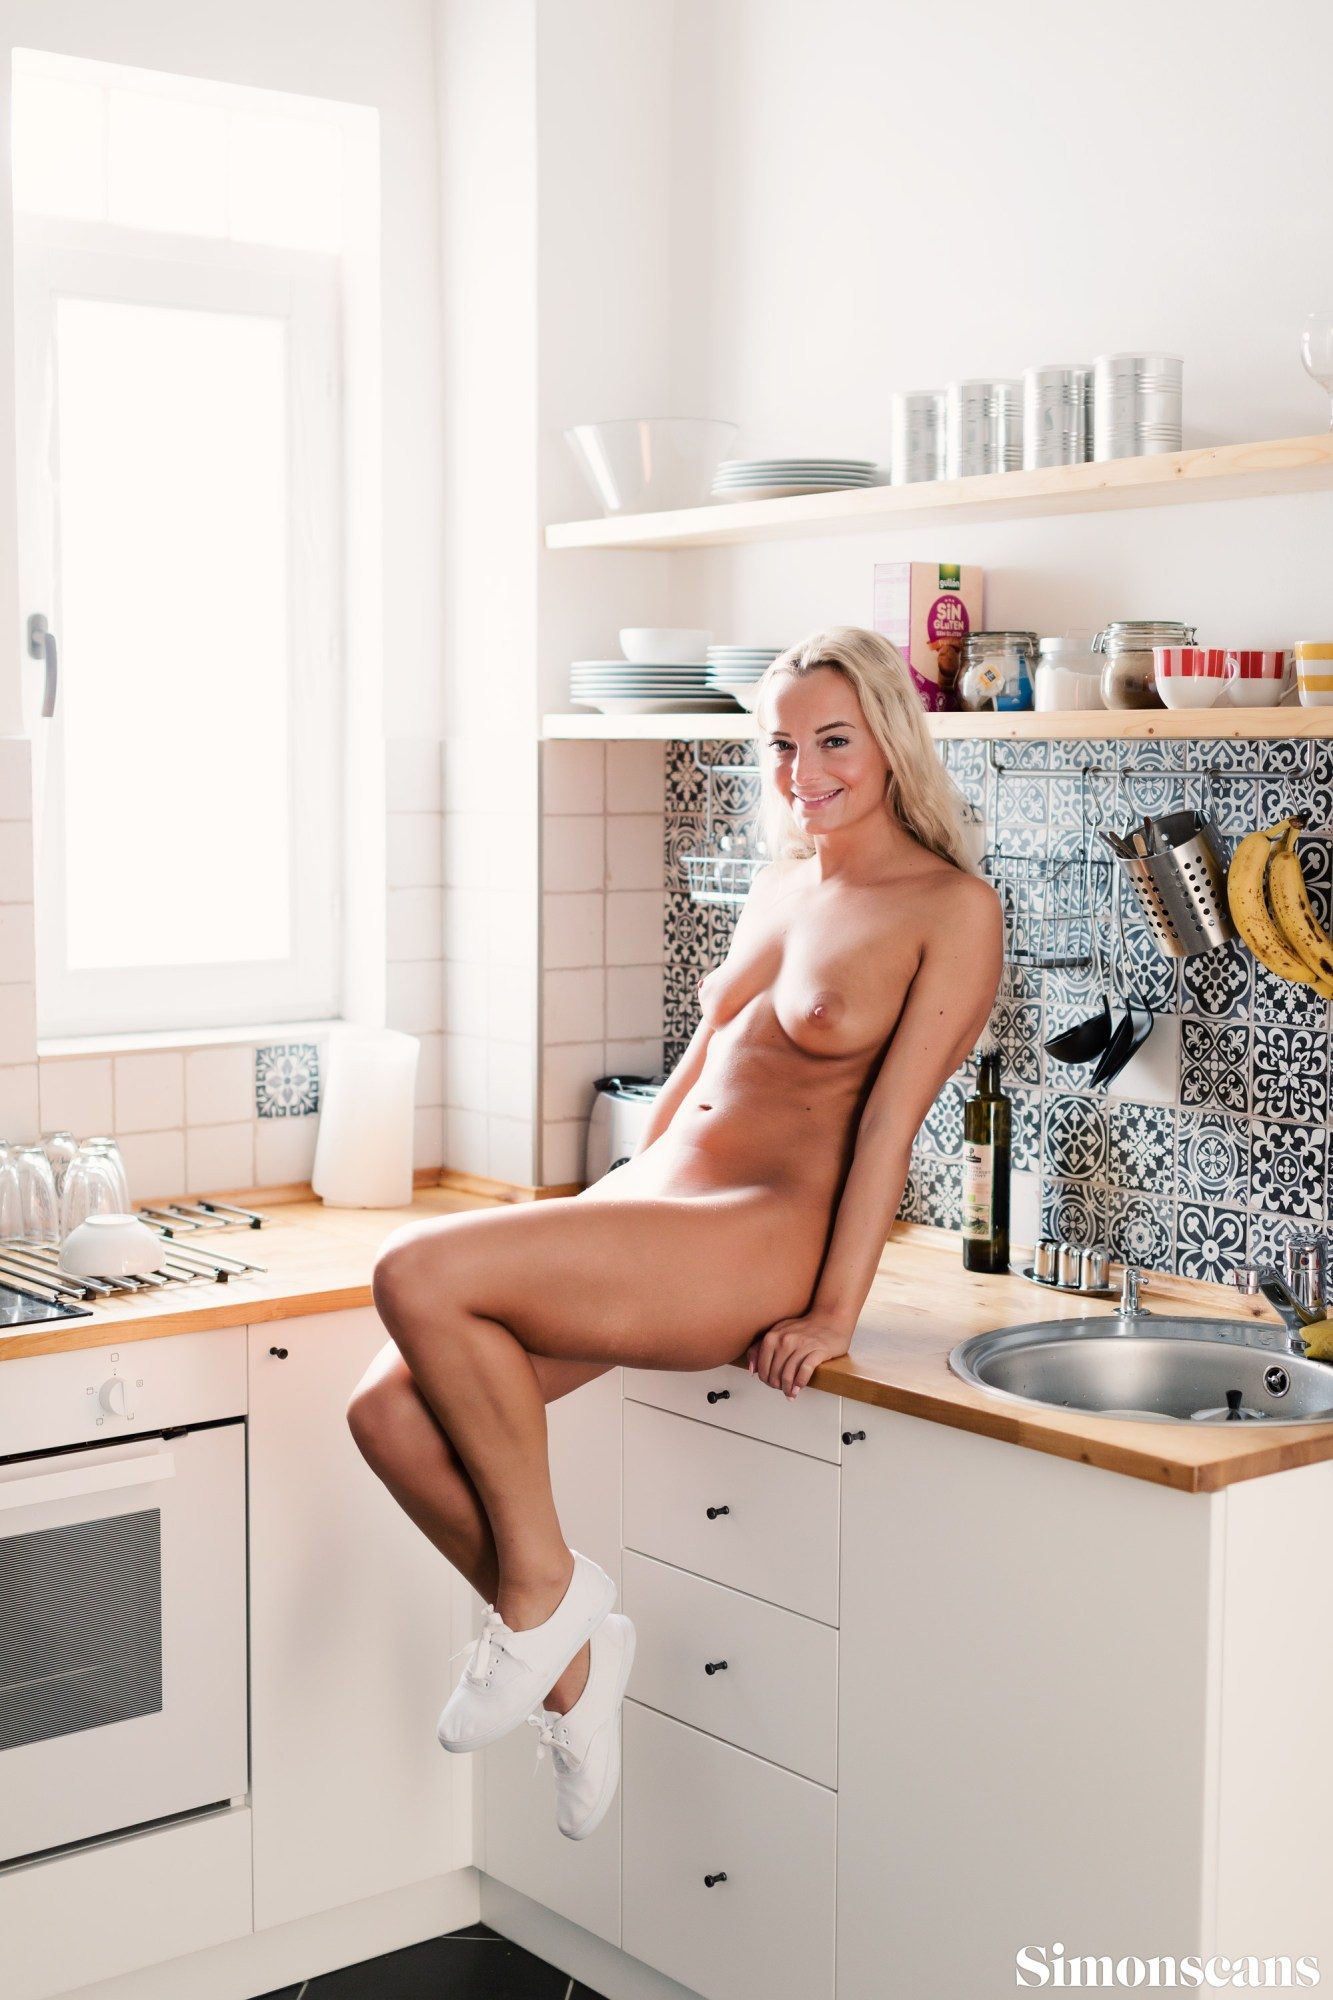 Victoria in the kitchen